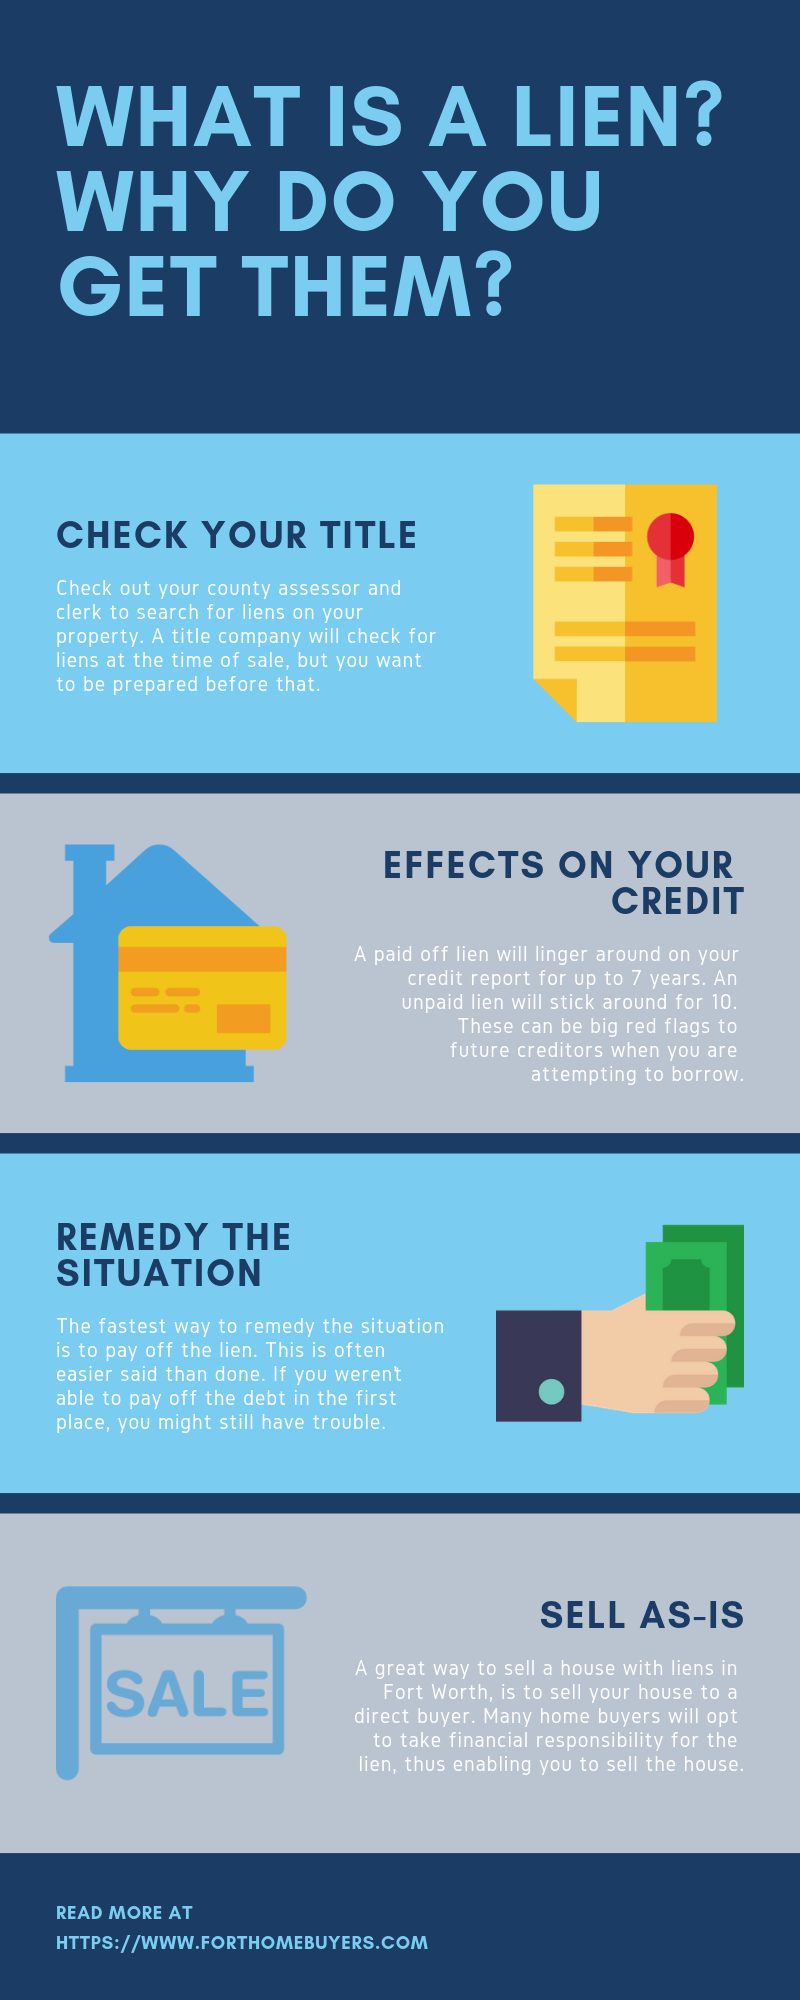 How to sell house with liens